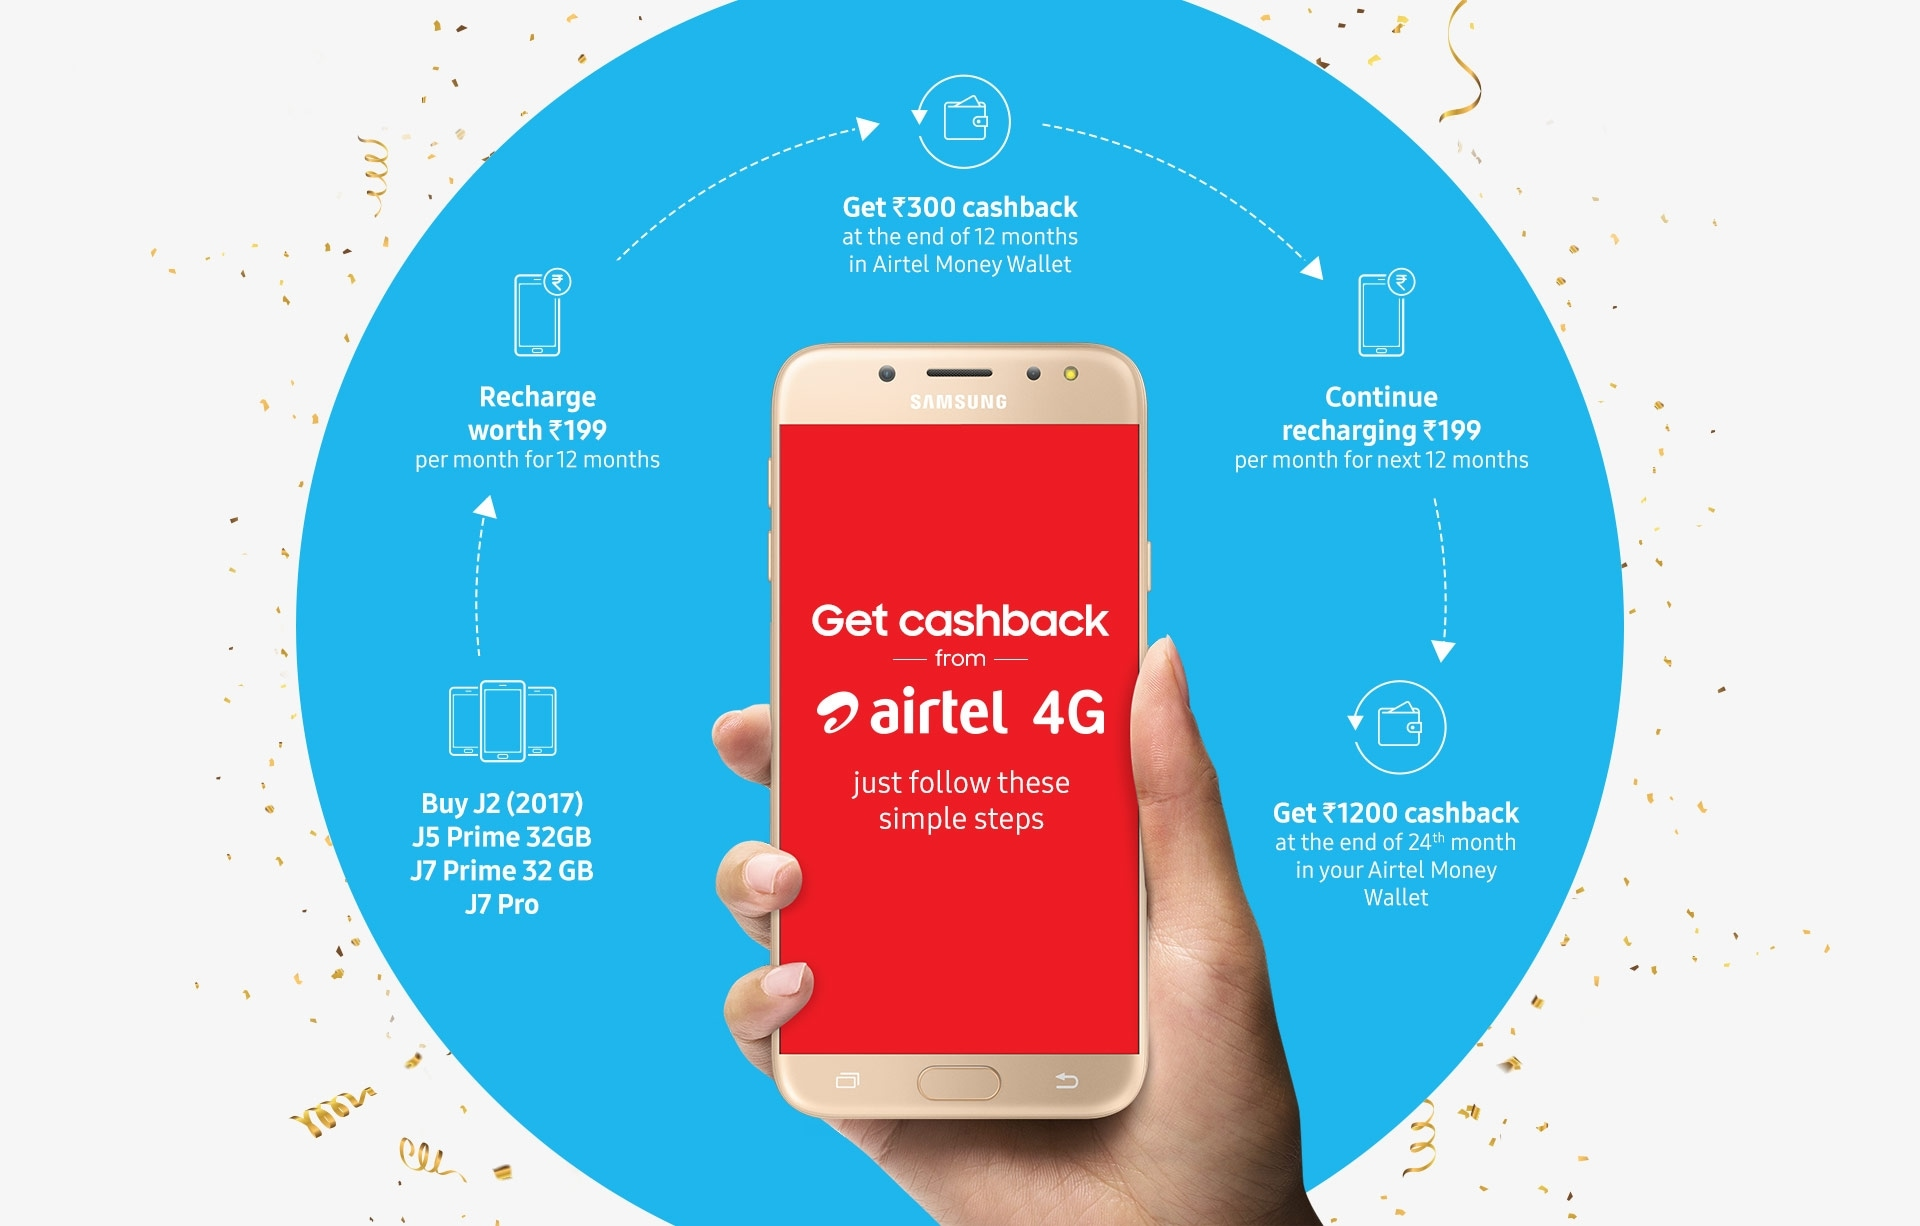 How to Avail Cashback with Airtel Prepaid